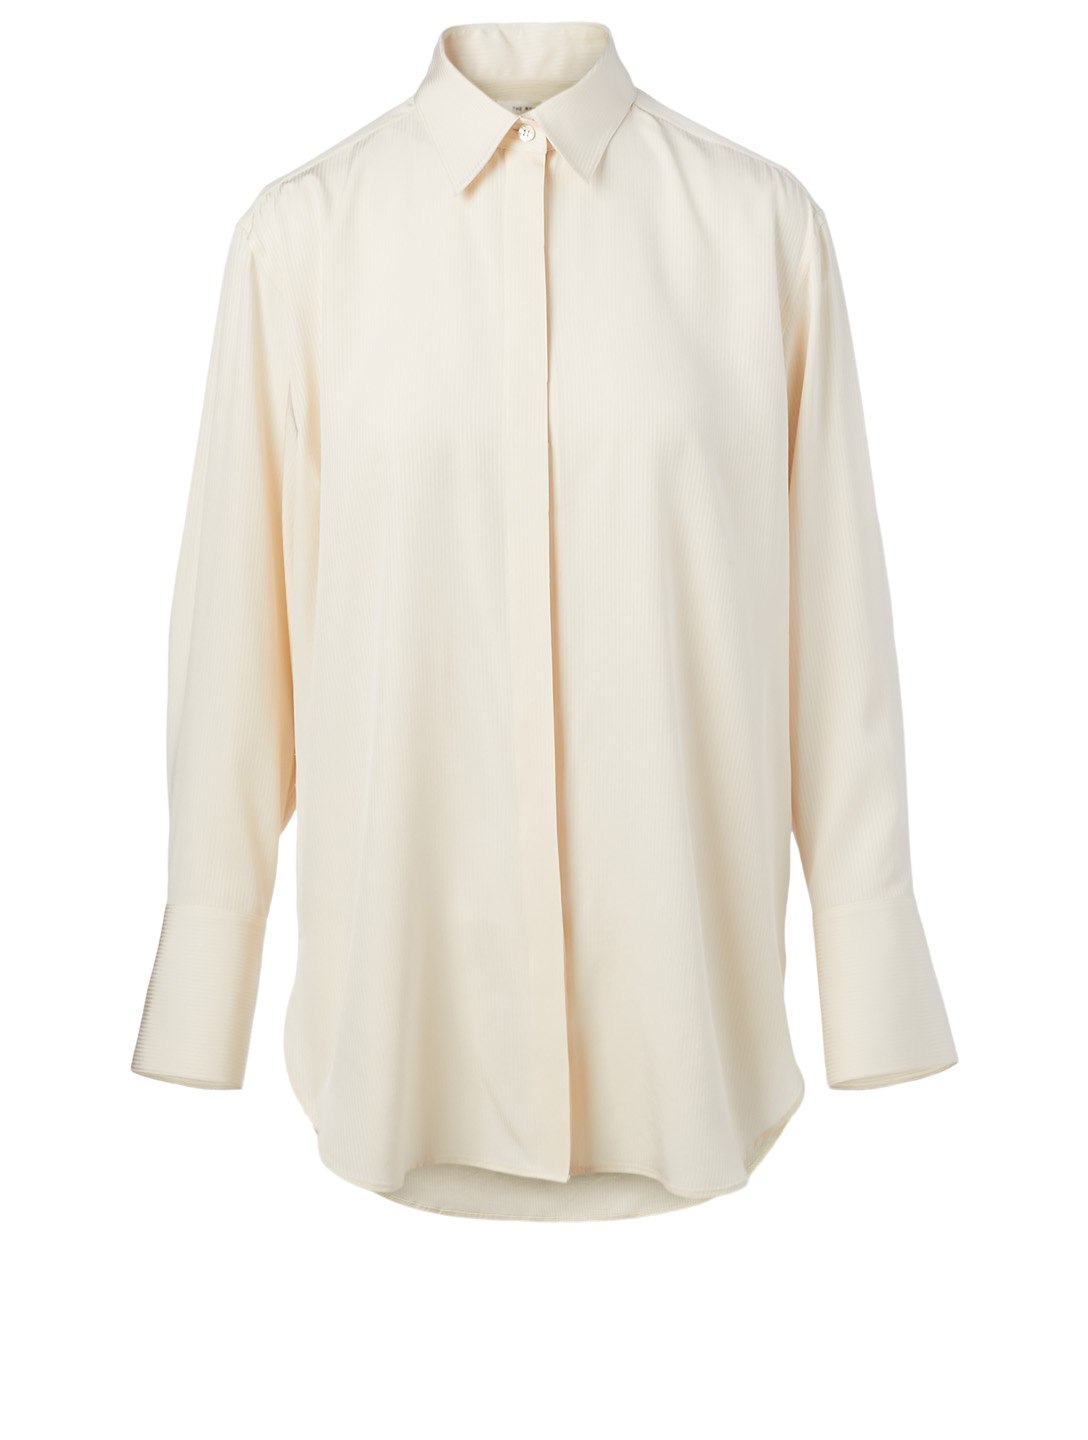 THE ROW Cody Silk Shirt Women's White